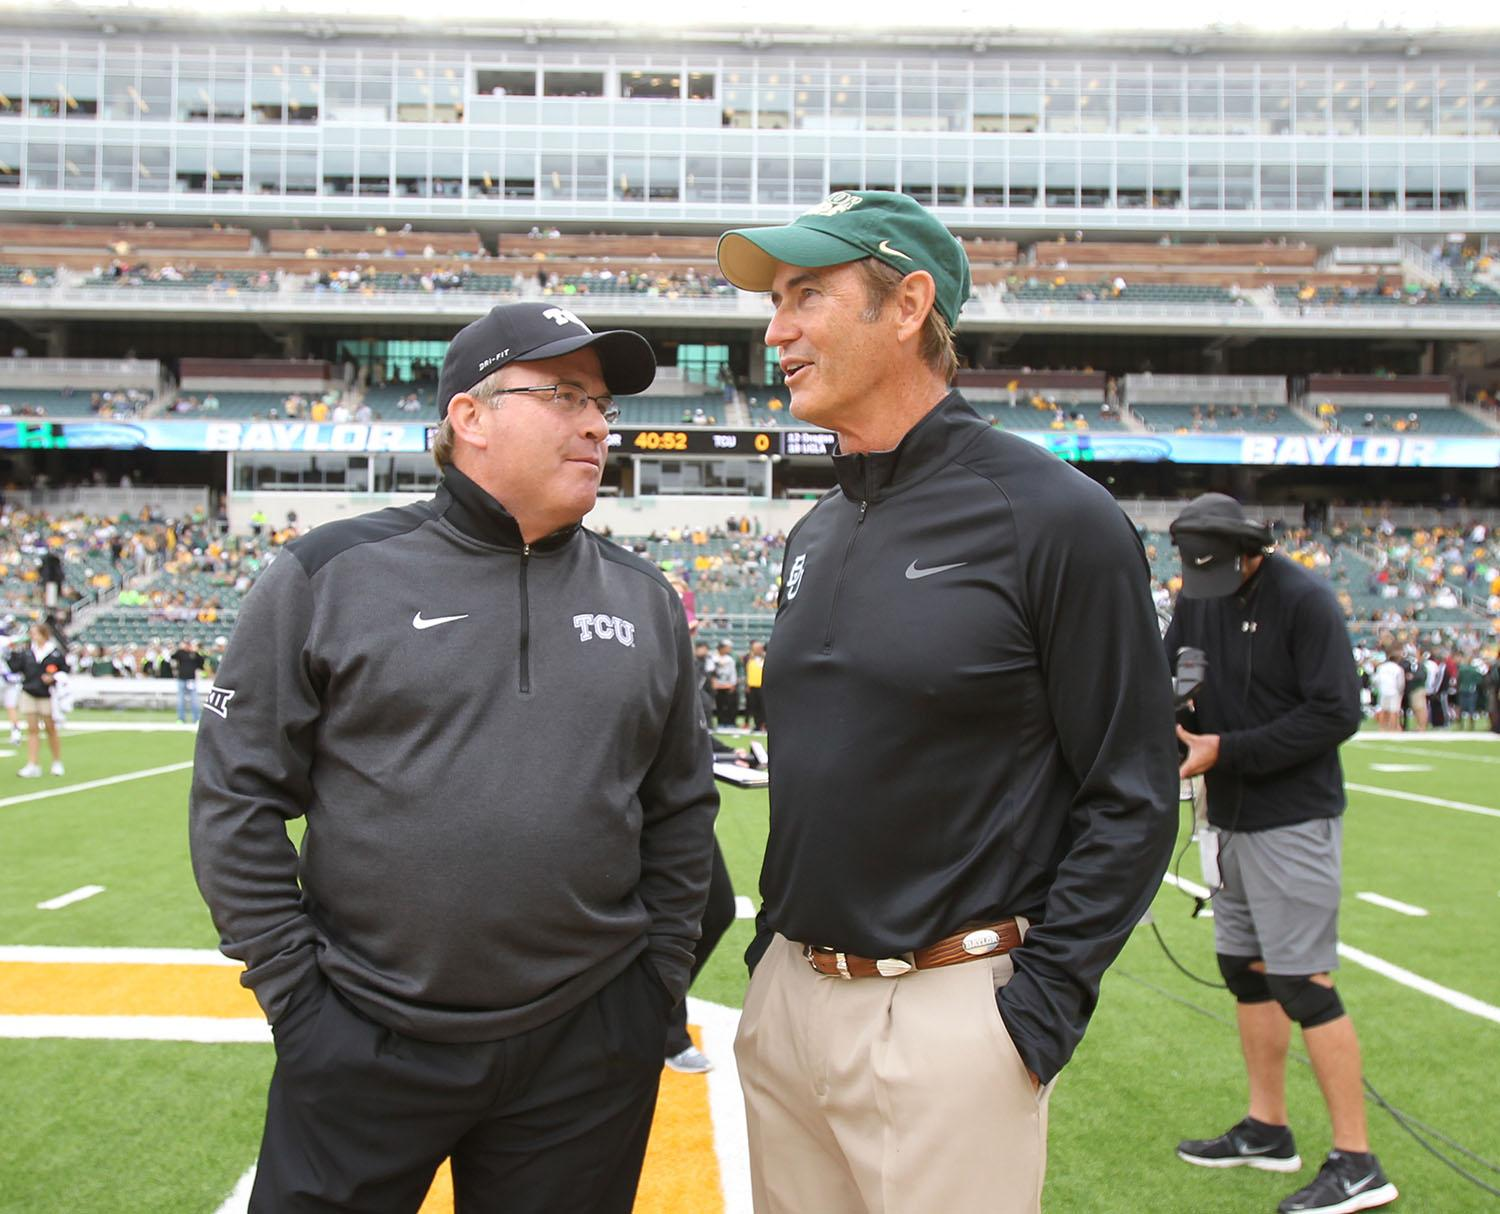 Baylor coach Art Briles, right and TCU Gary Patterson talks before their NCAA college football game, Saturday, Oct. 11, 2014, in Waco, Texas. (AP Photo/Jerry Larson)